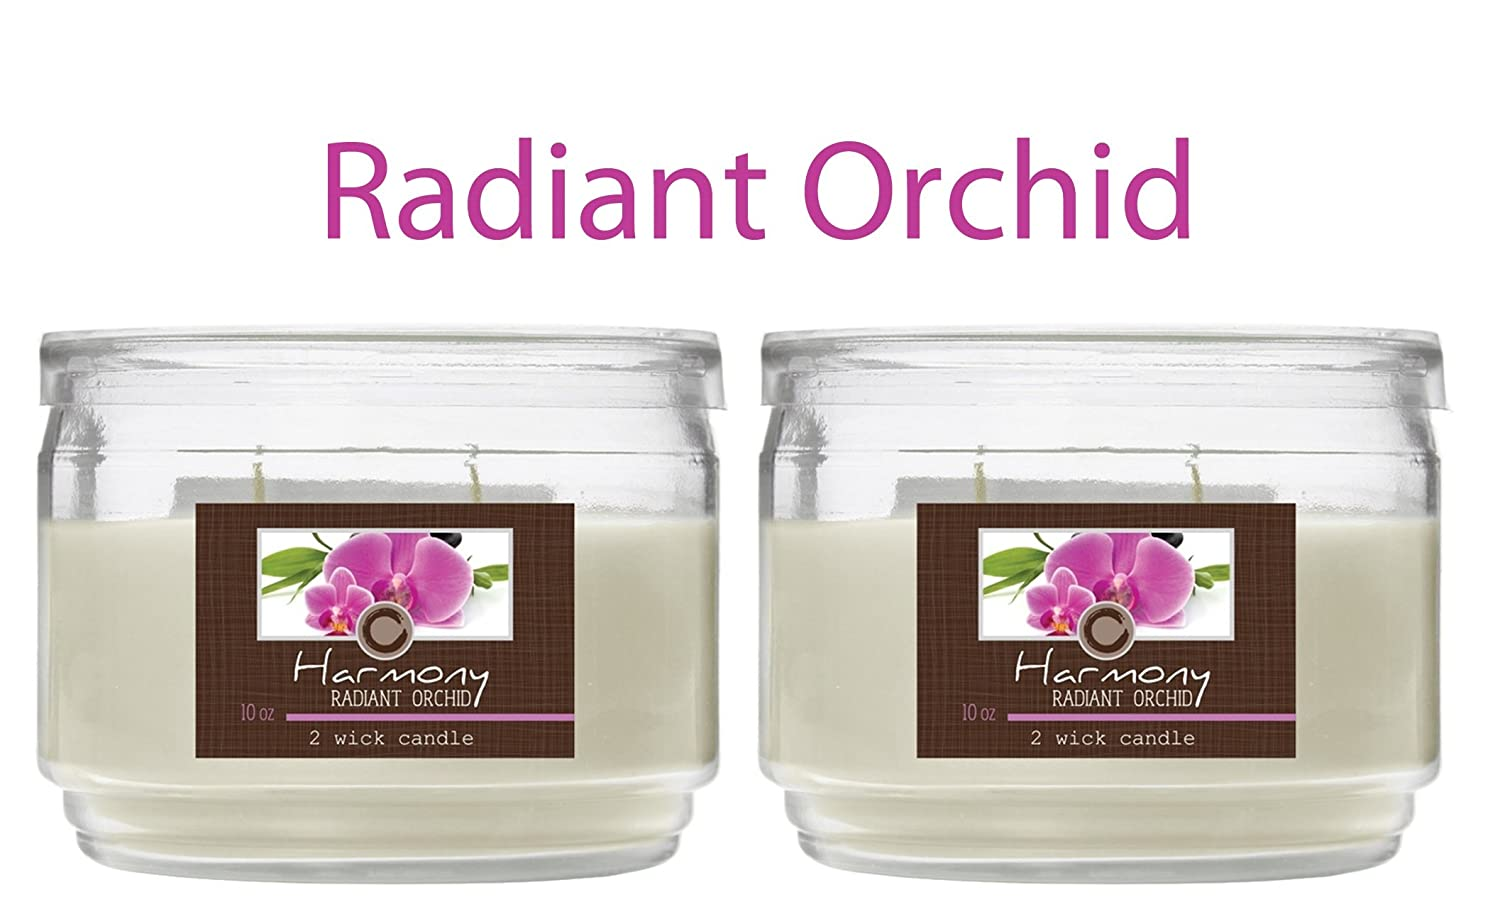 Hosley Set of 2 Radiant Orchid (Harmony) 2 Wick Candle, 10 oz: Floral & Lemon Grass Notes. Ideal Gift for Weddings, Special Occasions, Spa, Reiki, Meditation, Aromatherapy, Bathroom O9 HG Global H63114WDC